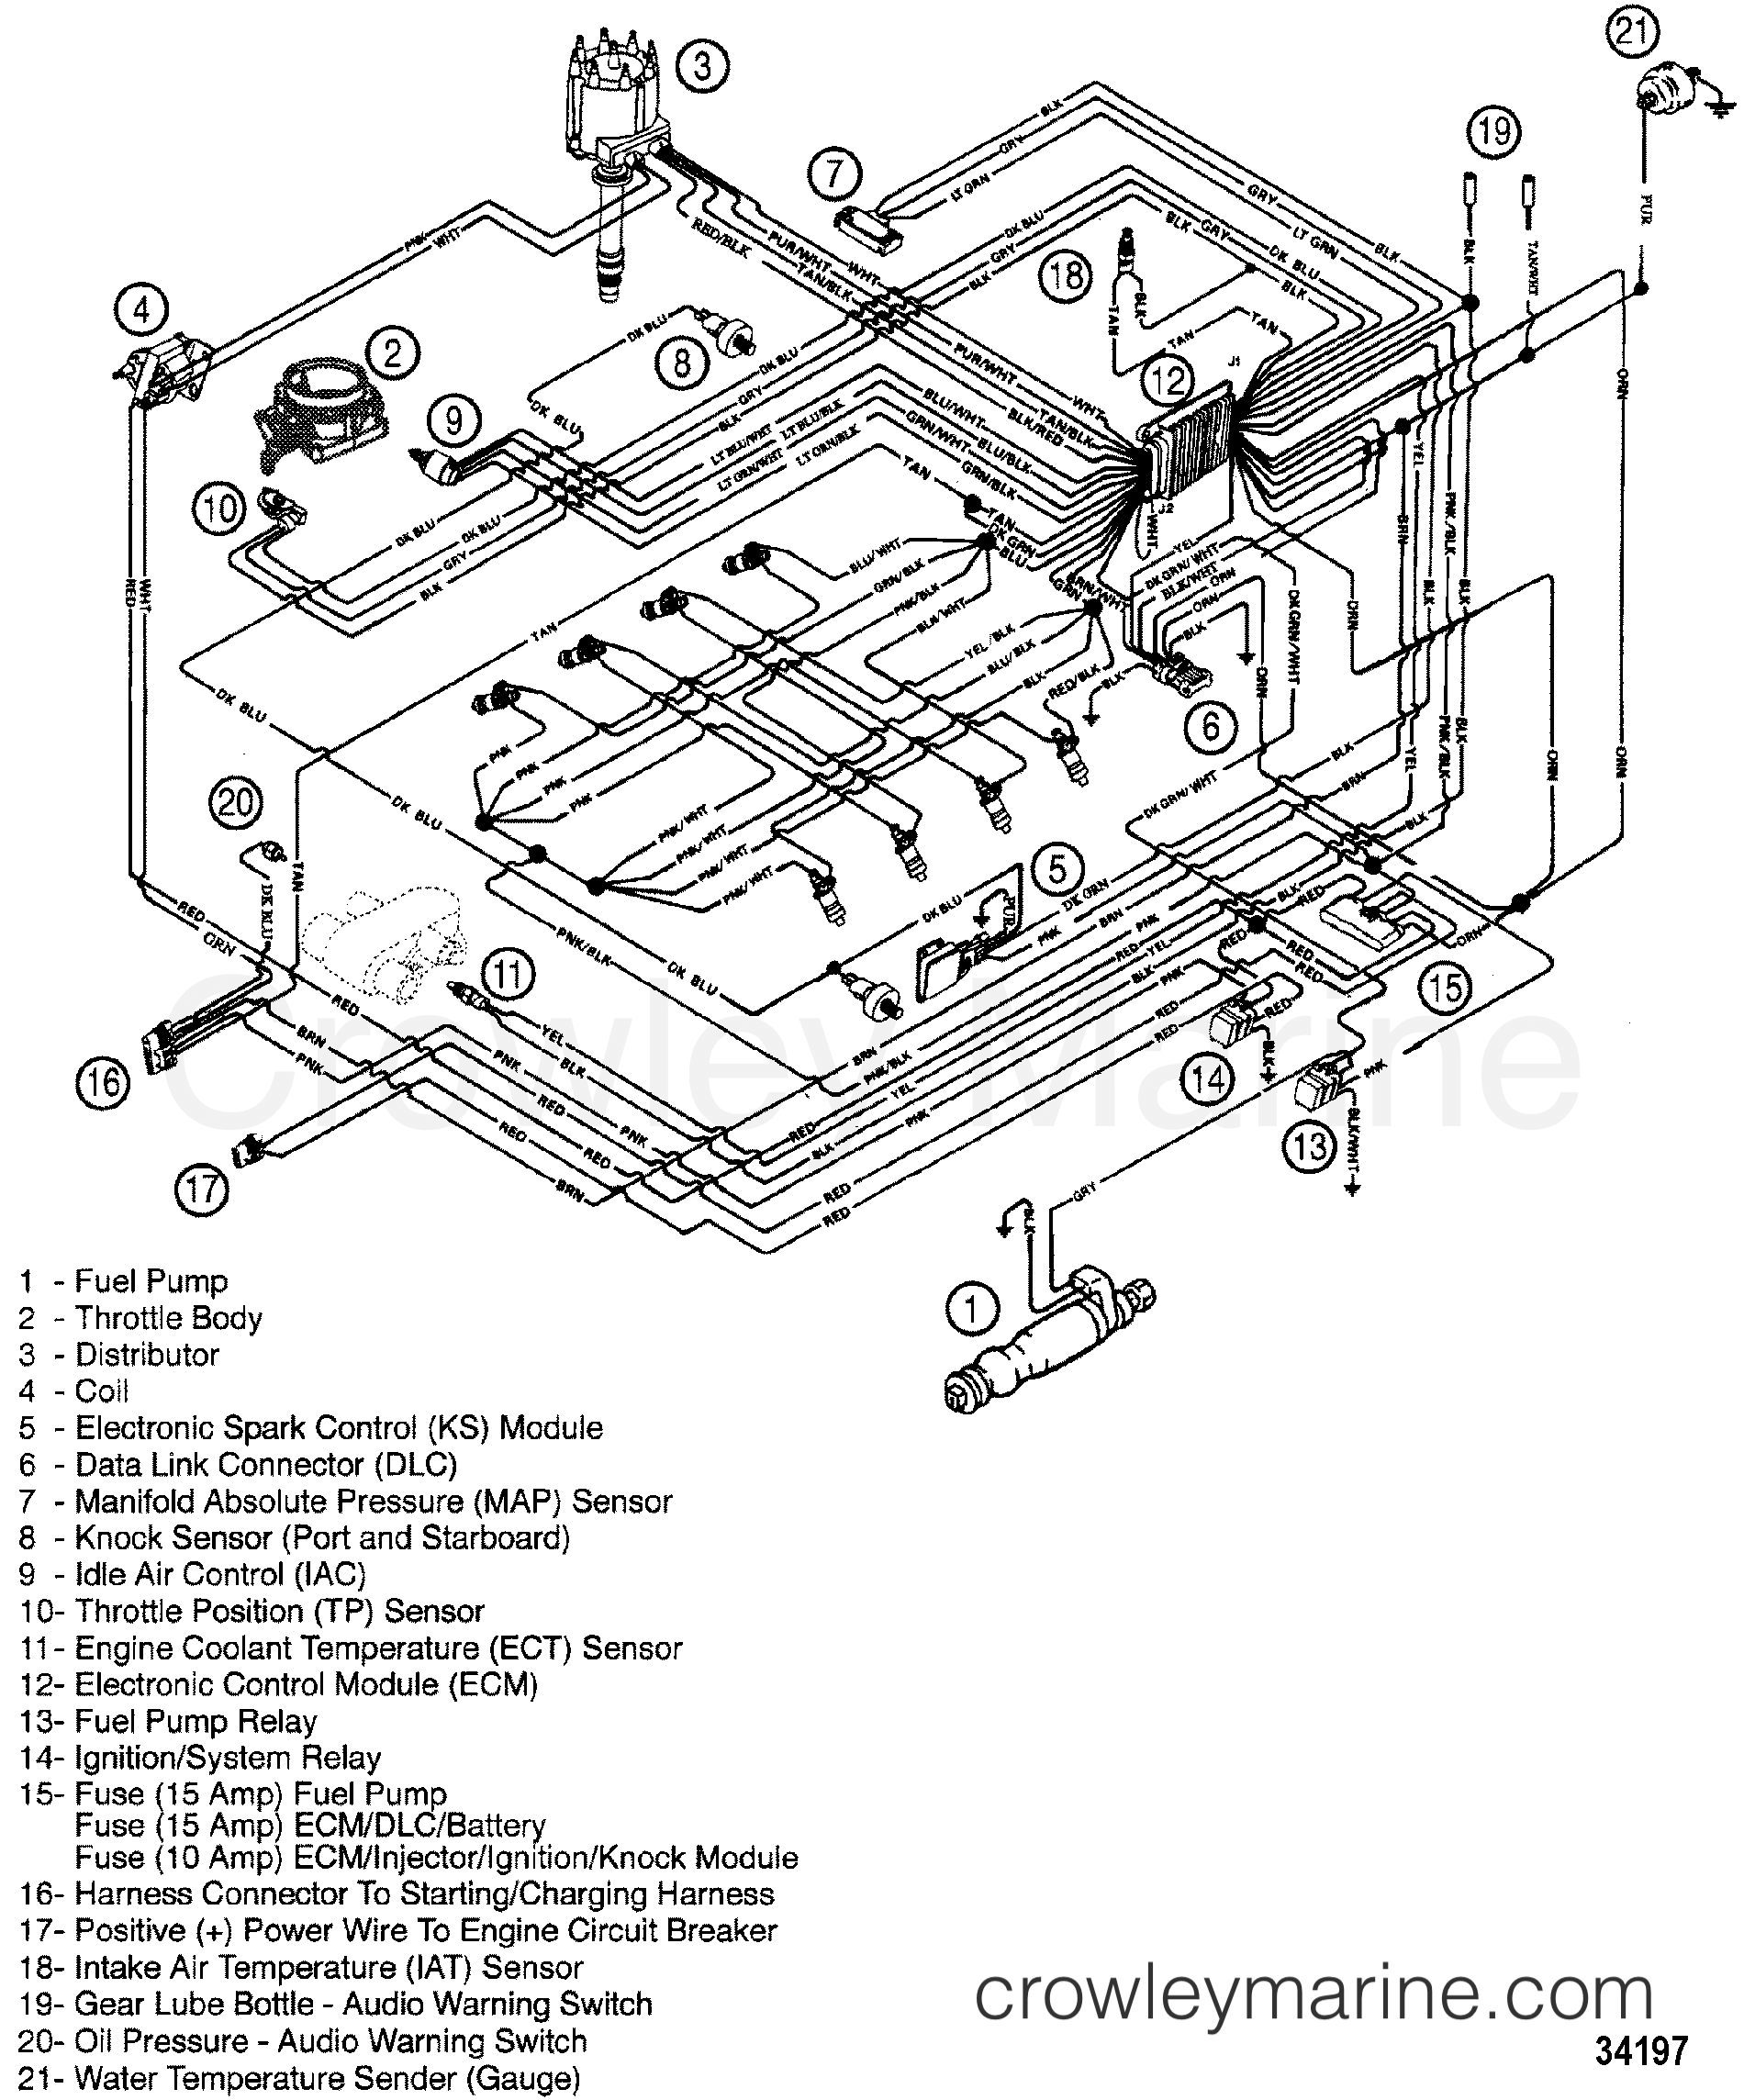 1996 crownline 202 br wiring diagram   36 wiring diagram